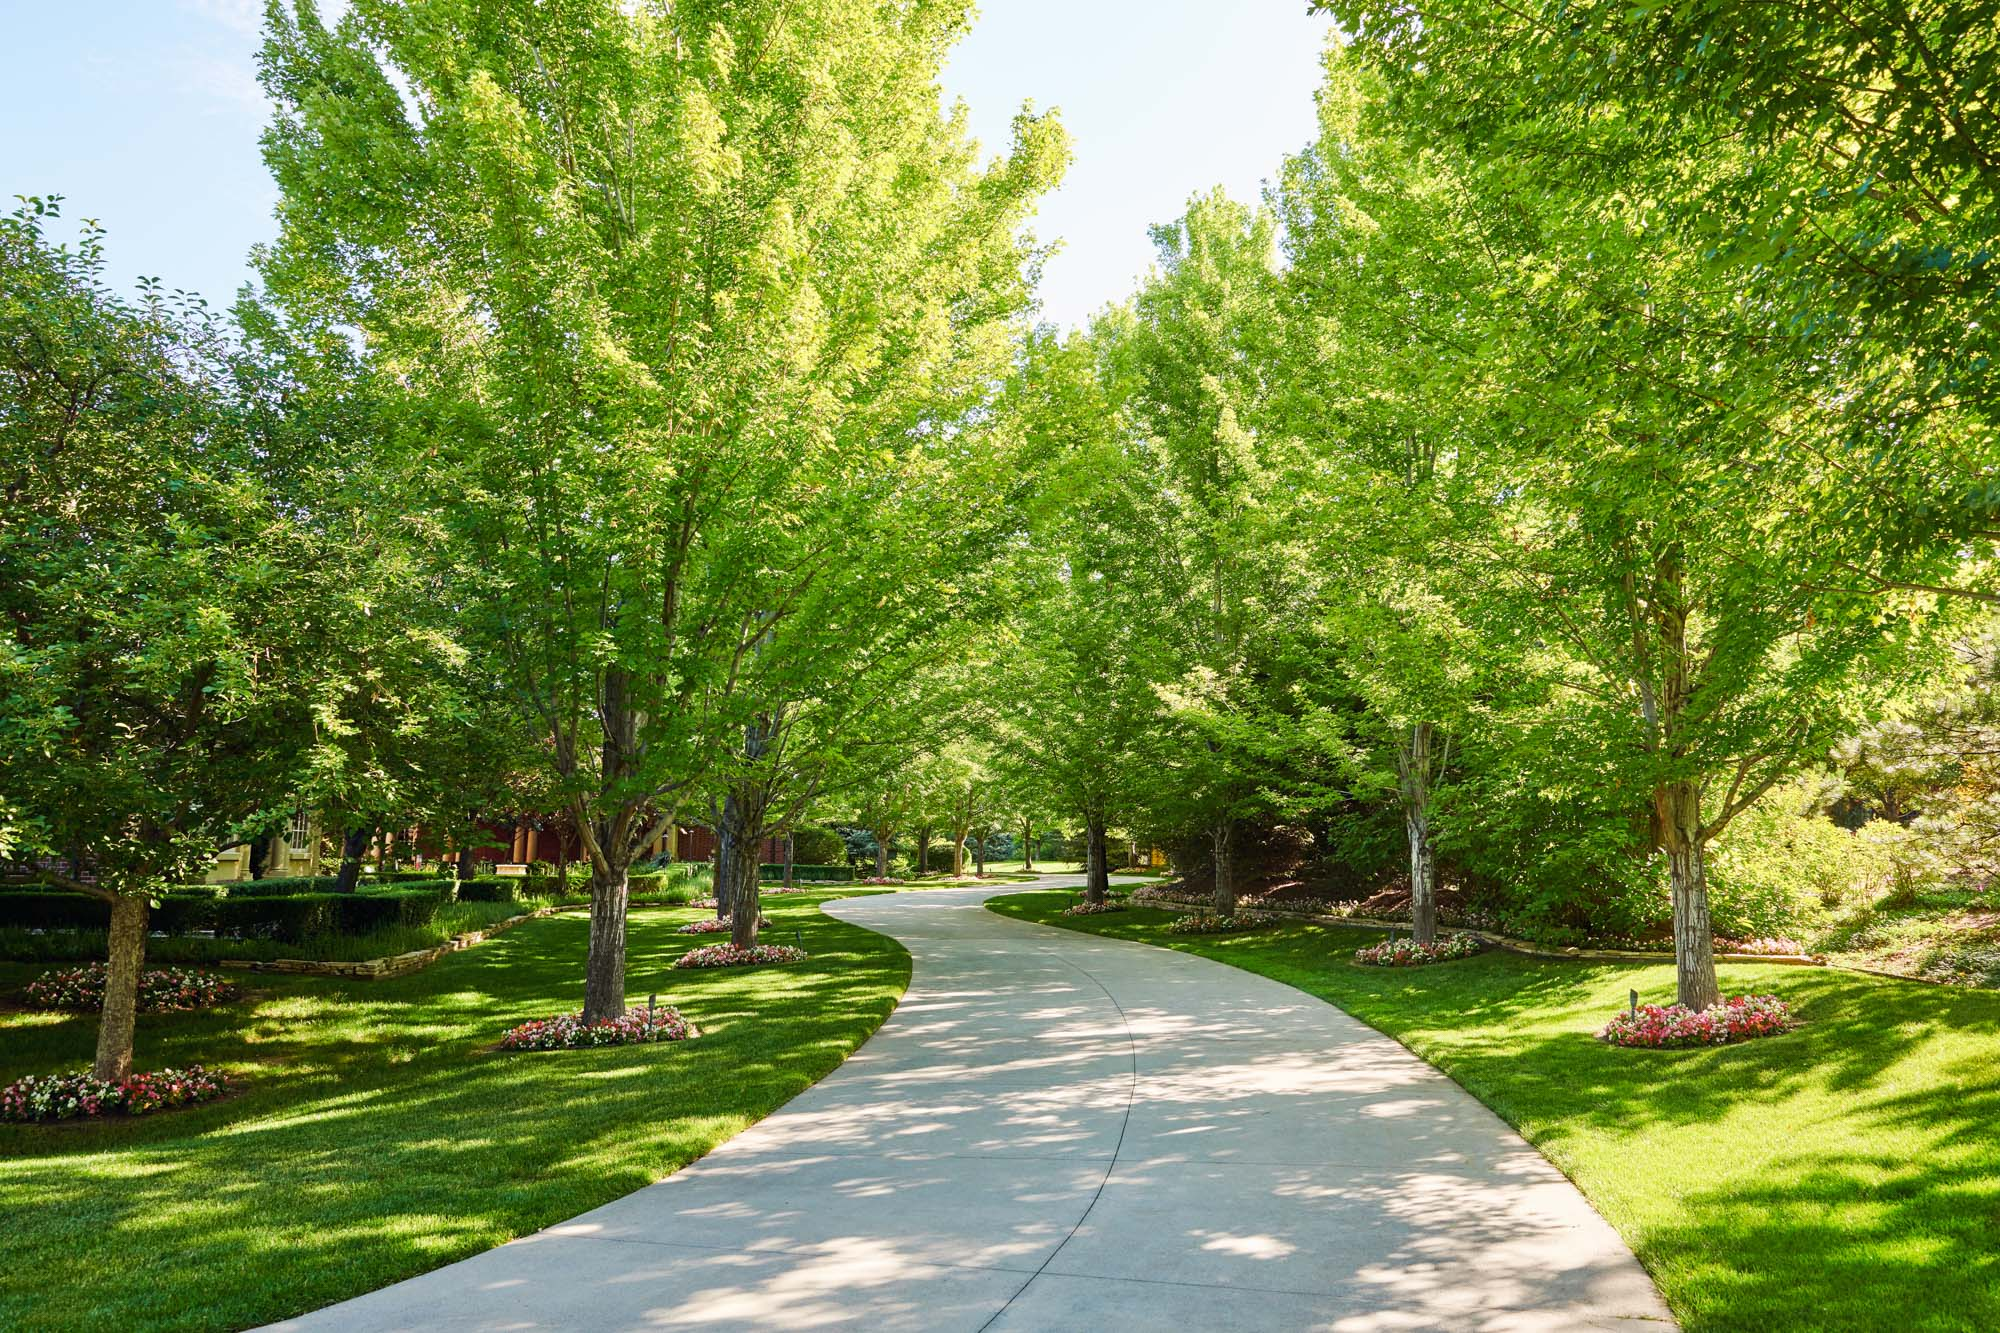 Here are a few tips on how to take care of your trees